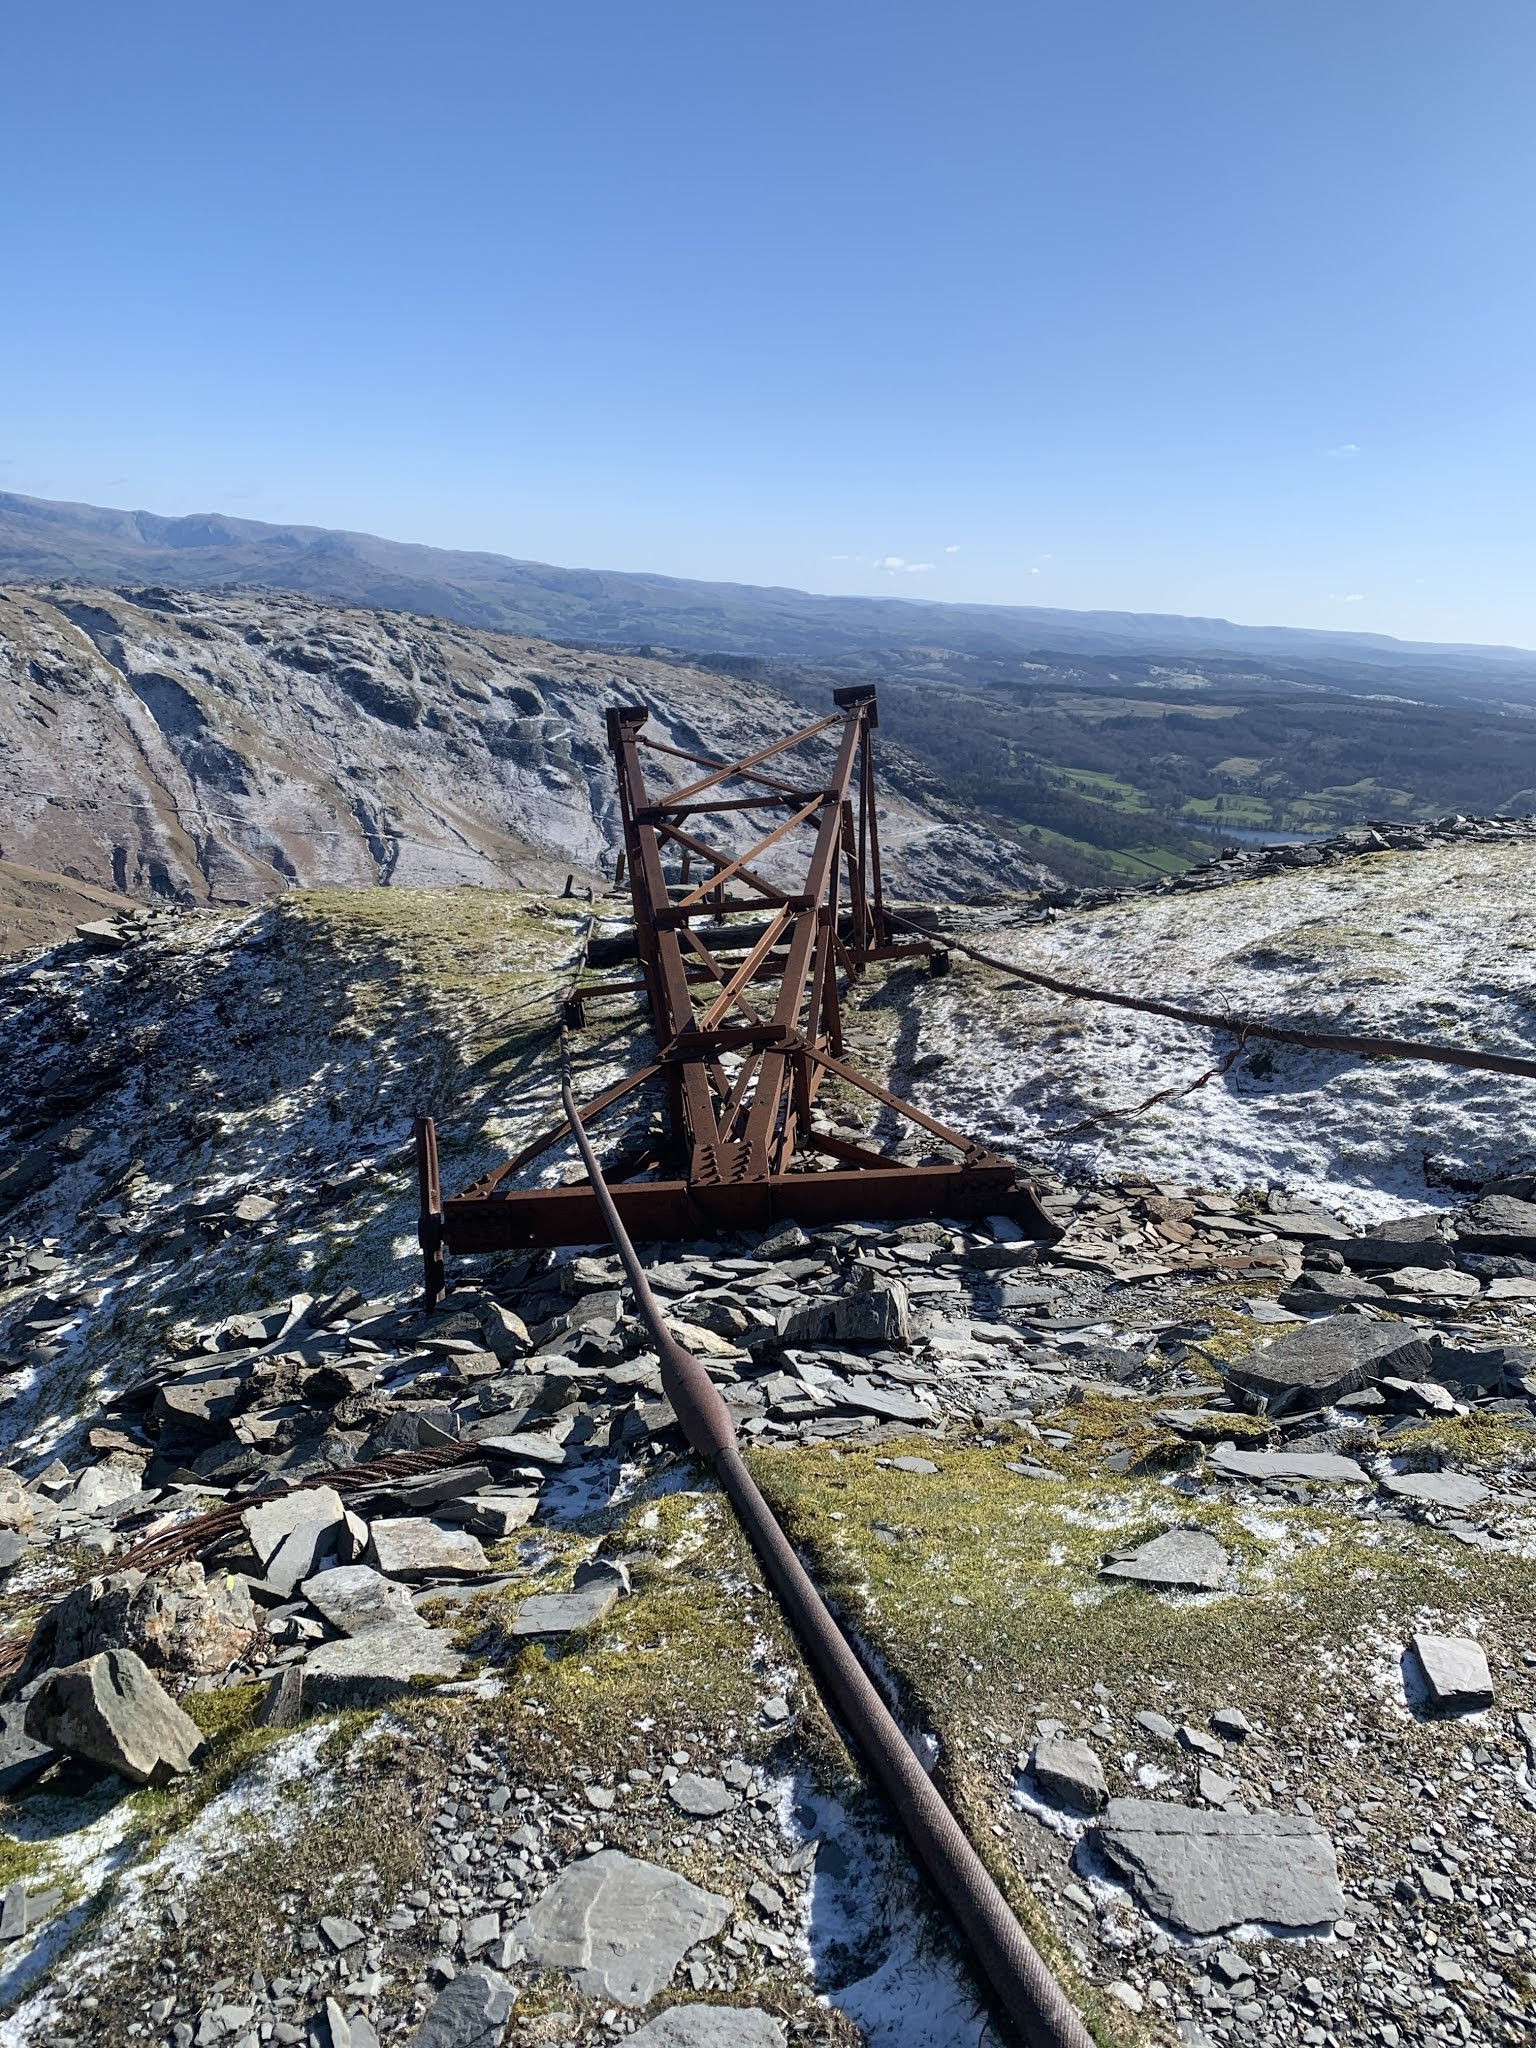 Abandoned electrical pylon that is now rusty on the hike up old man of coniston